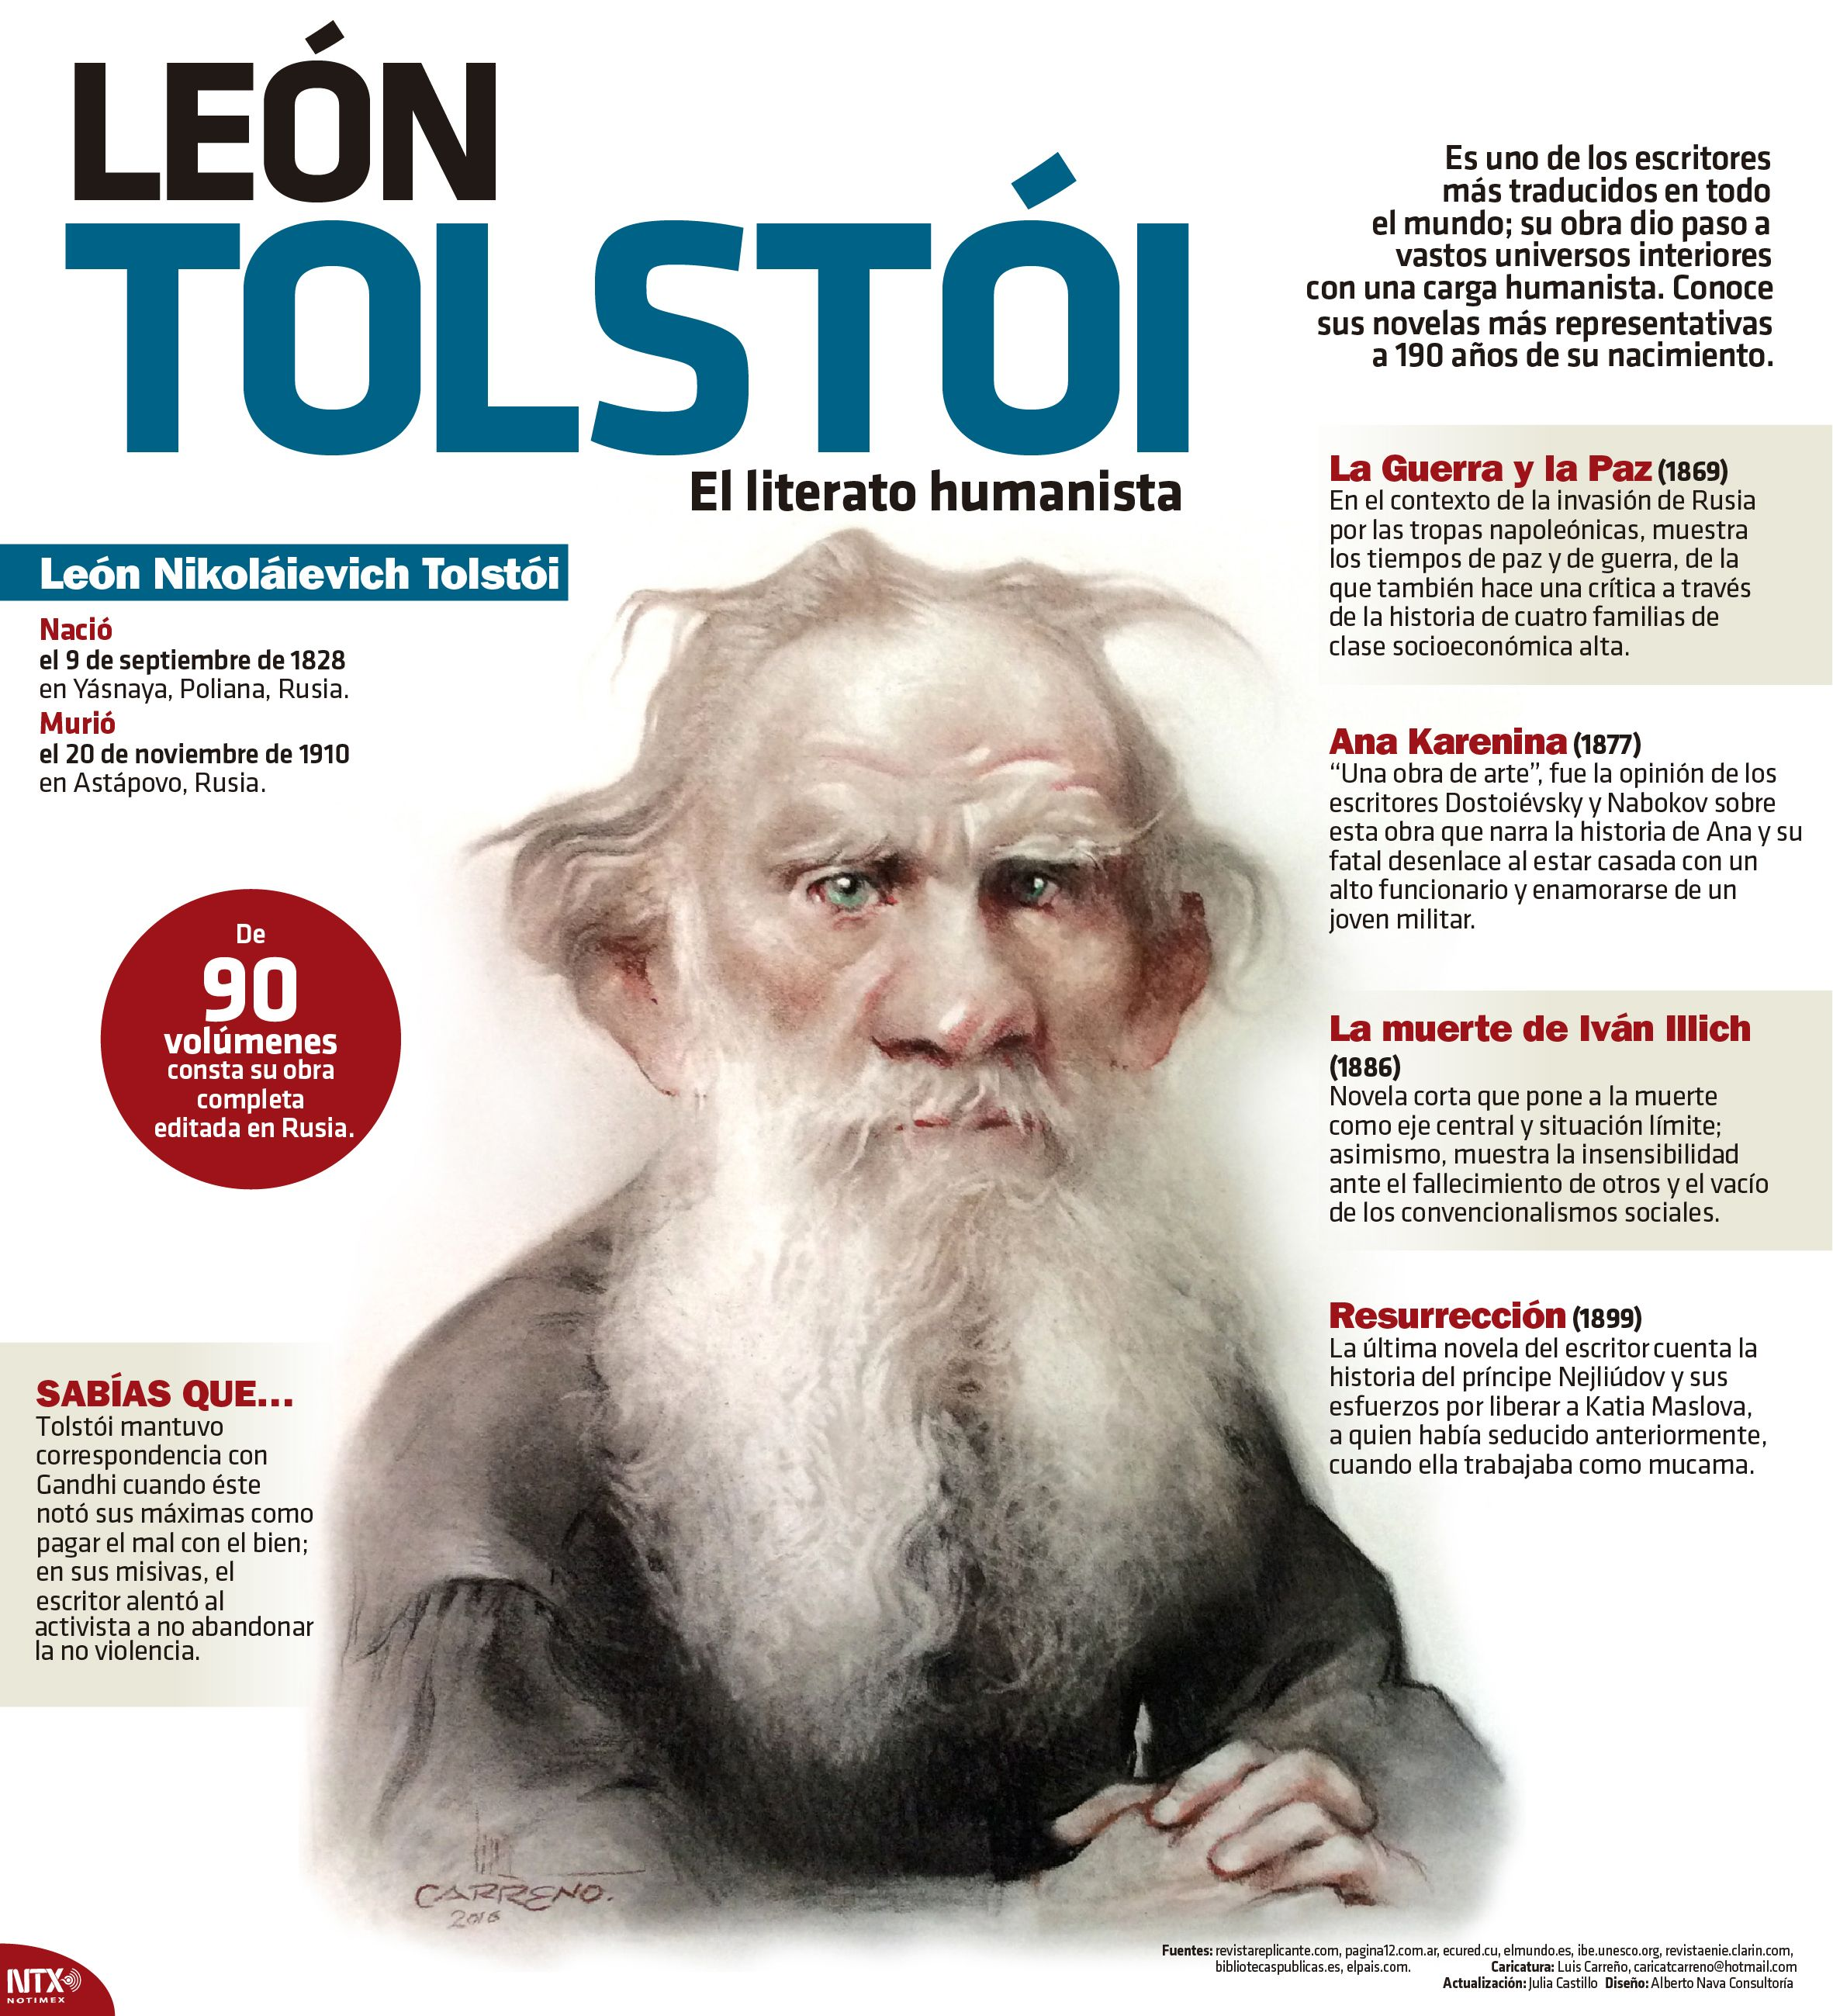 38 Ideas De Leon Tolstoy Russian Novelist Considered One Of The Most Important Writers Of World Literature Tolstoi Frases Leon Tolstoi Frases De Leones